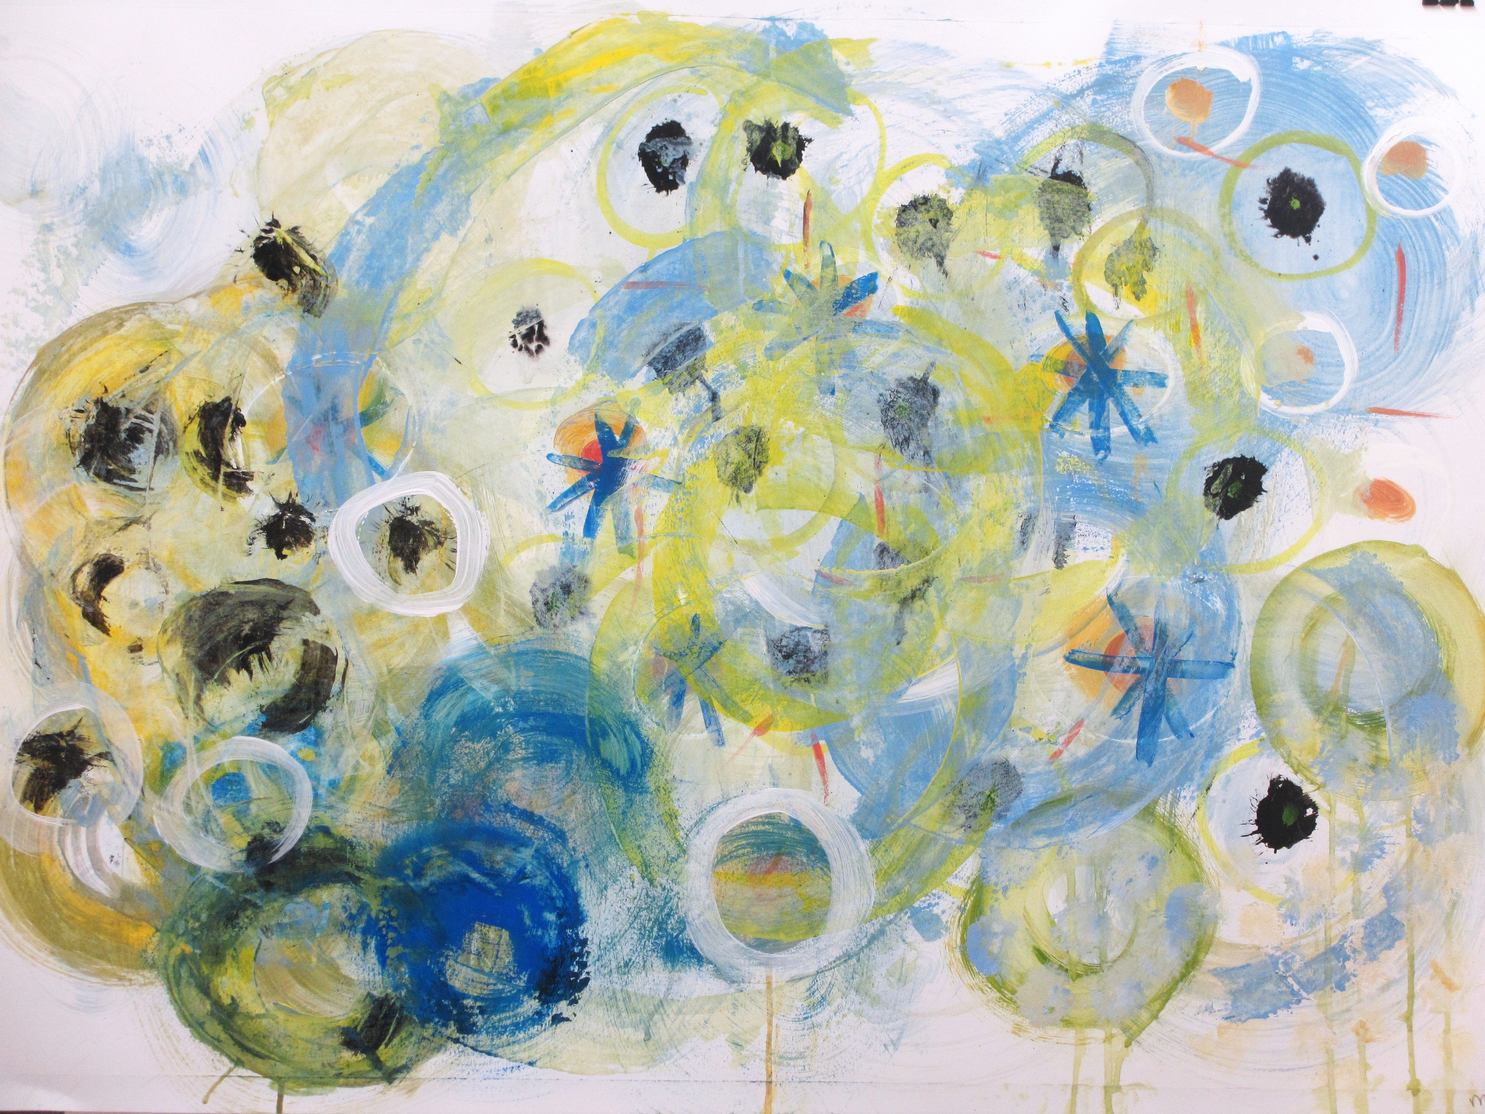 """Abstract painting """"Raindrops II"""". Artist Marina de Wit. Acrylic and gouache on paper. 100 x 70 cm. 2013"""